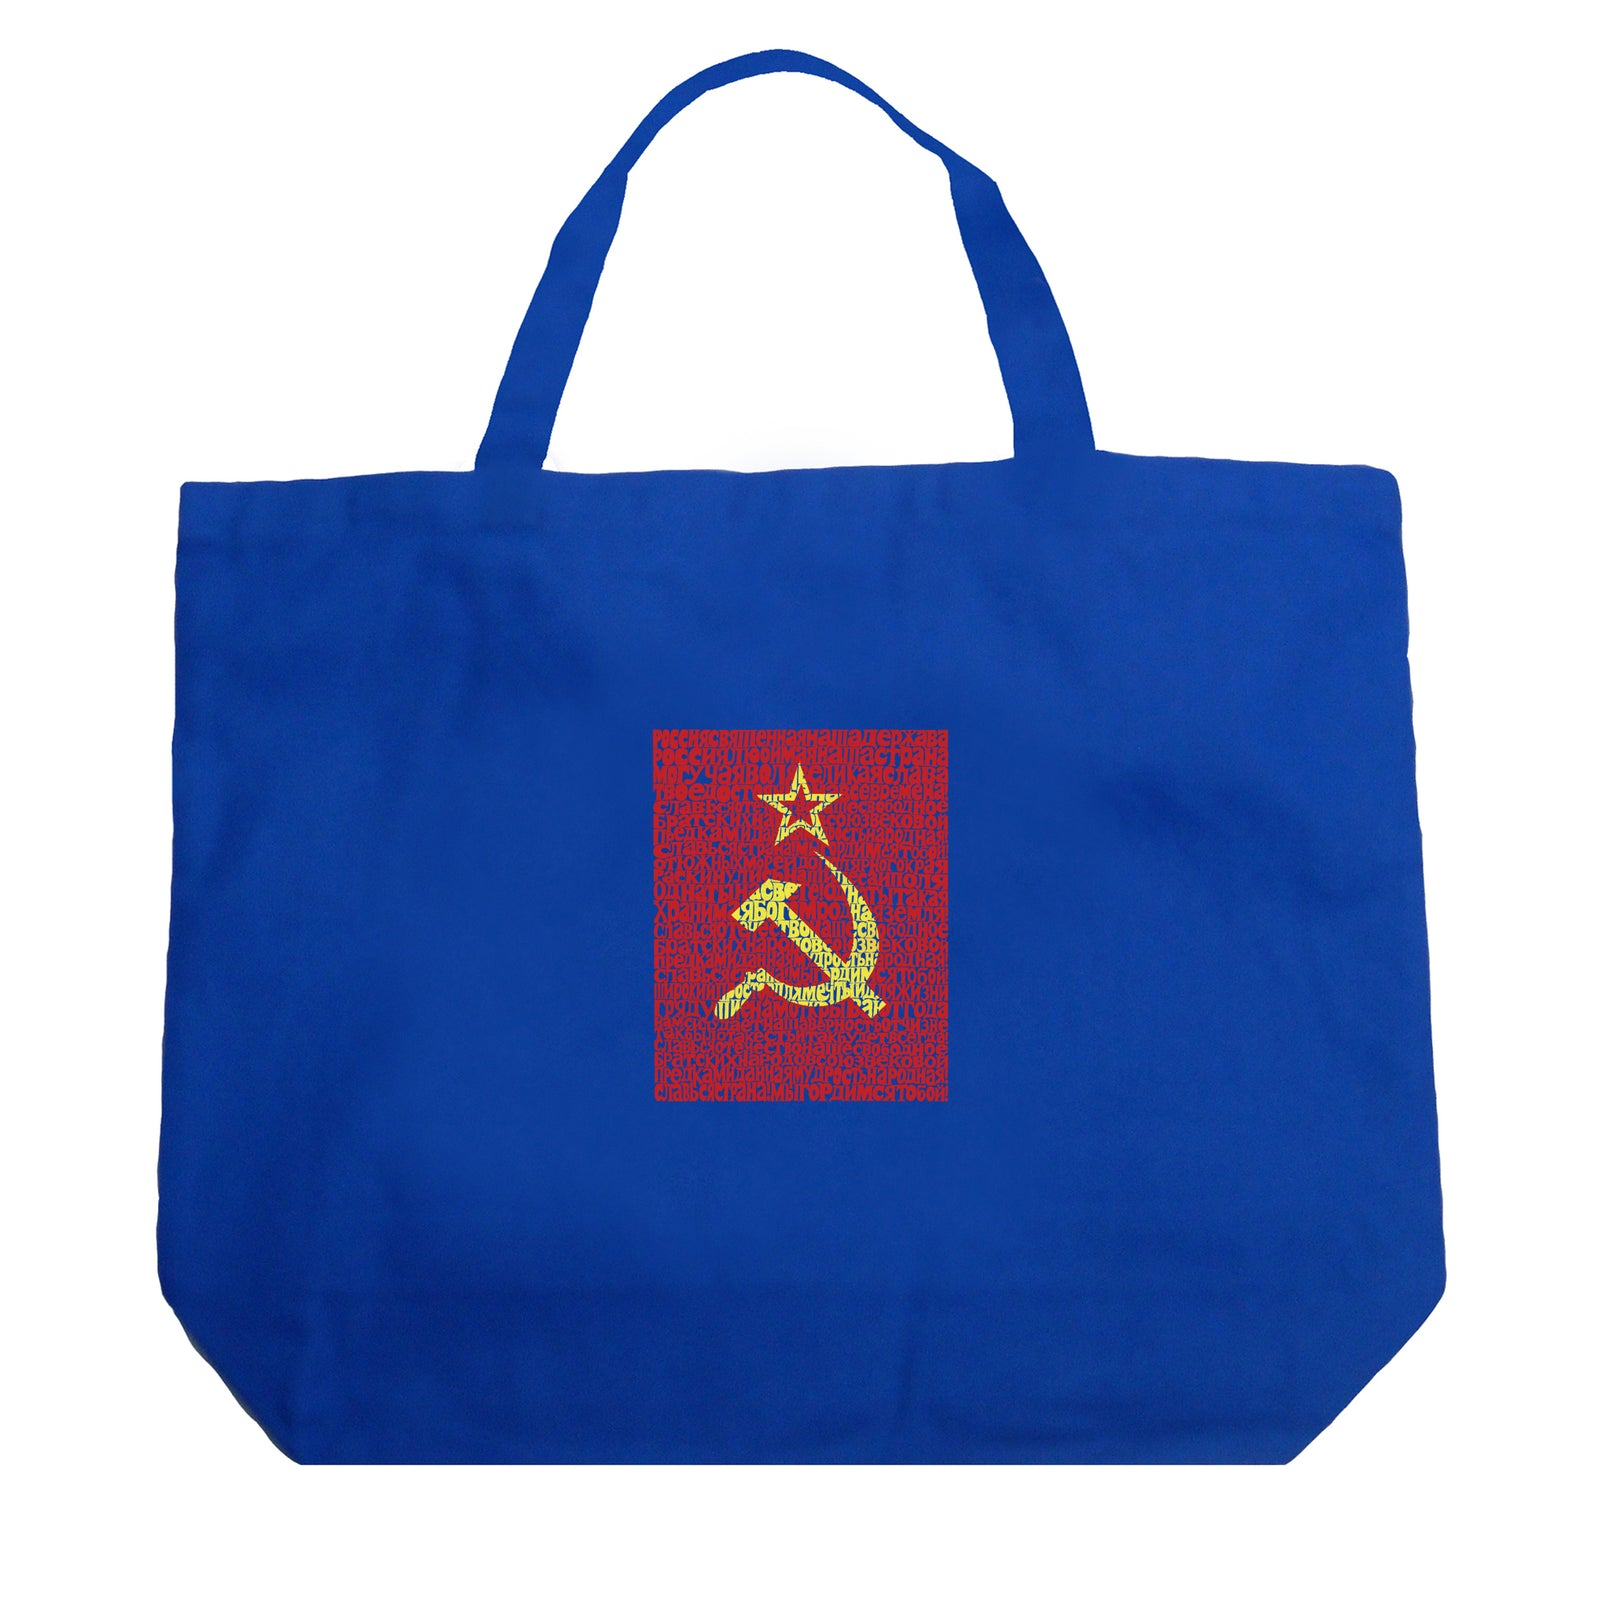 Large Tote Bag - Lyrics to the Soviet National Anthem